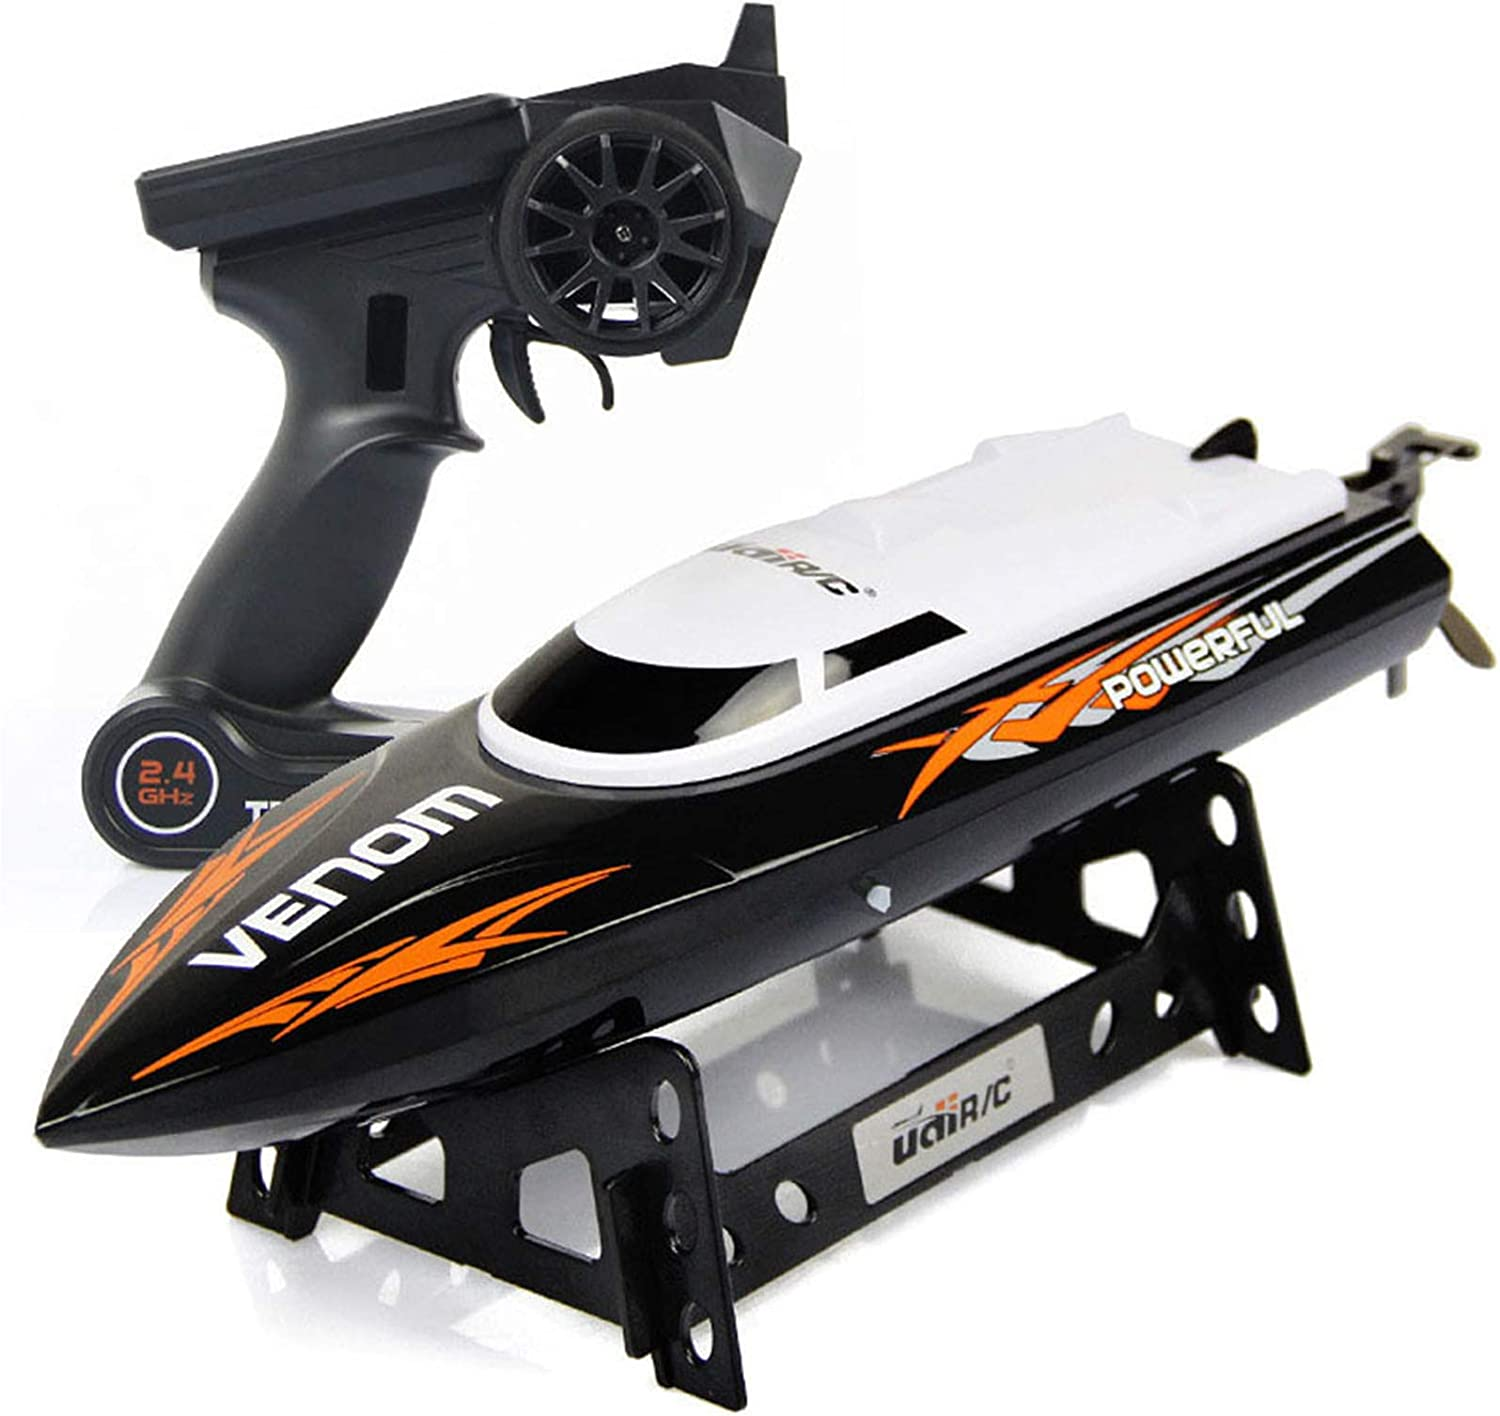 Cheerwing RC Racing Boat for Adults - High Speed Electronic Remote Control Boat for Kids (Black+White)